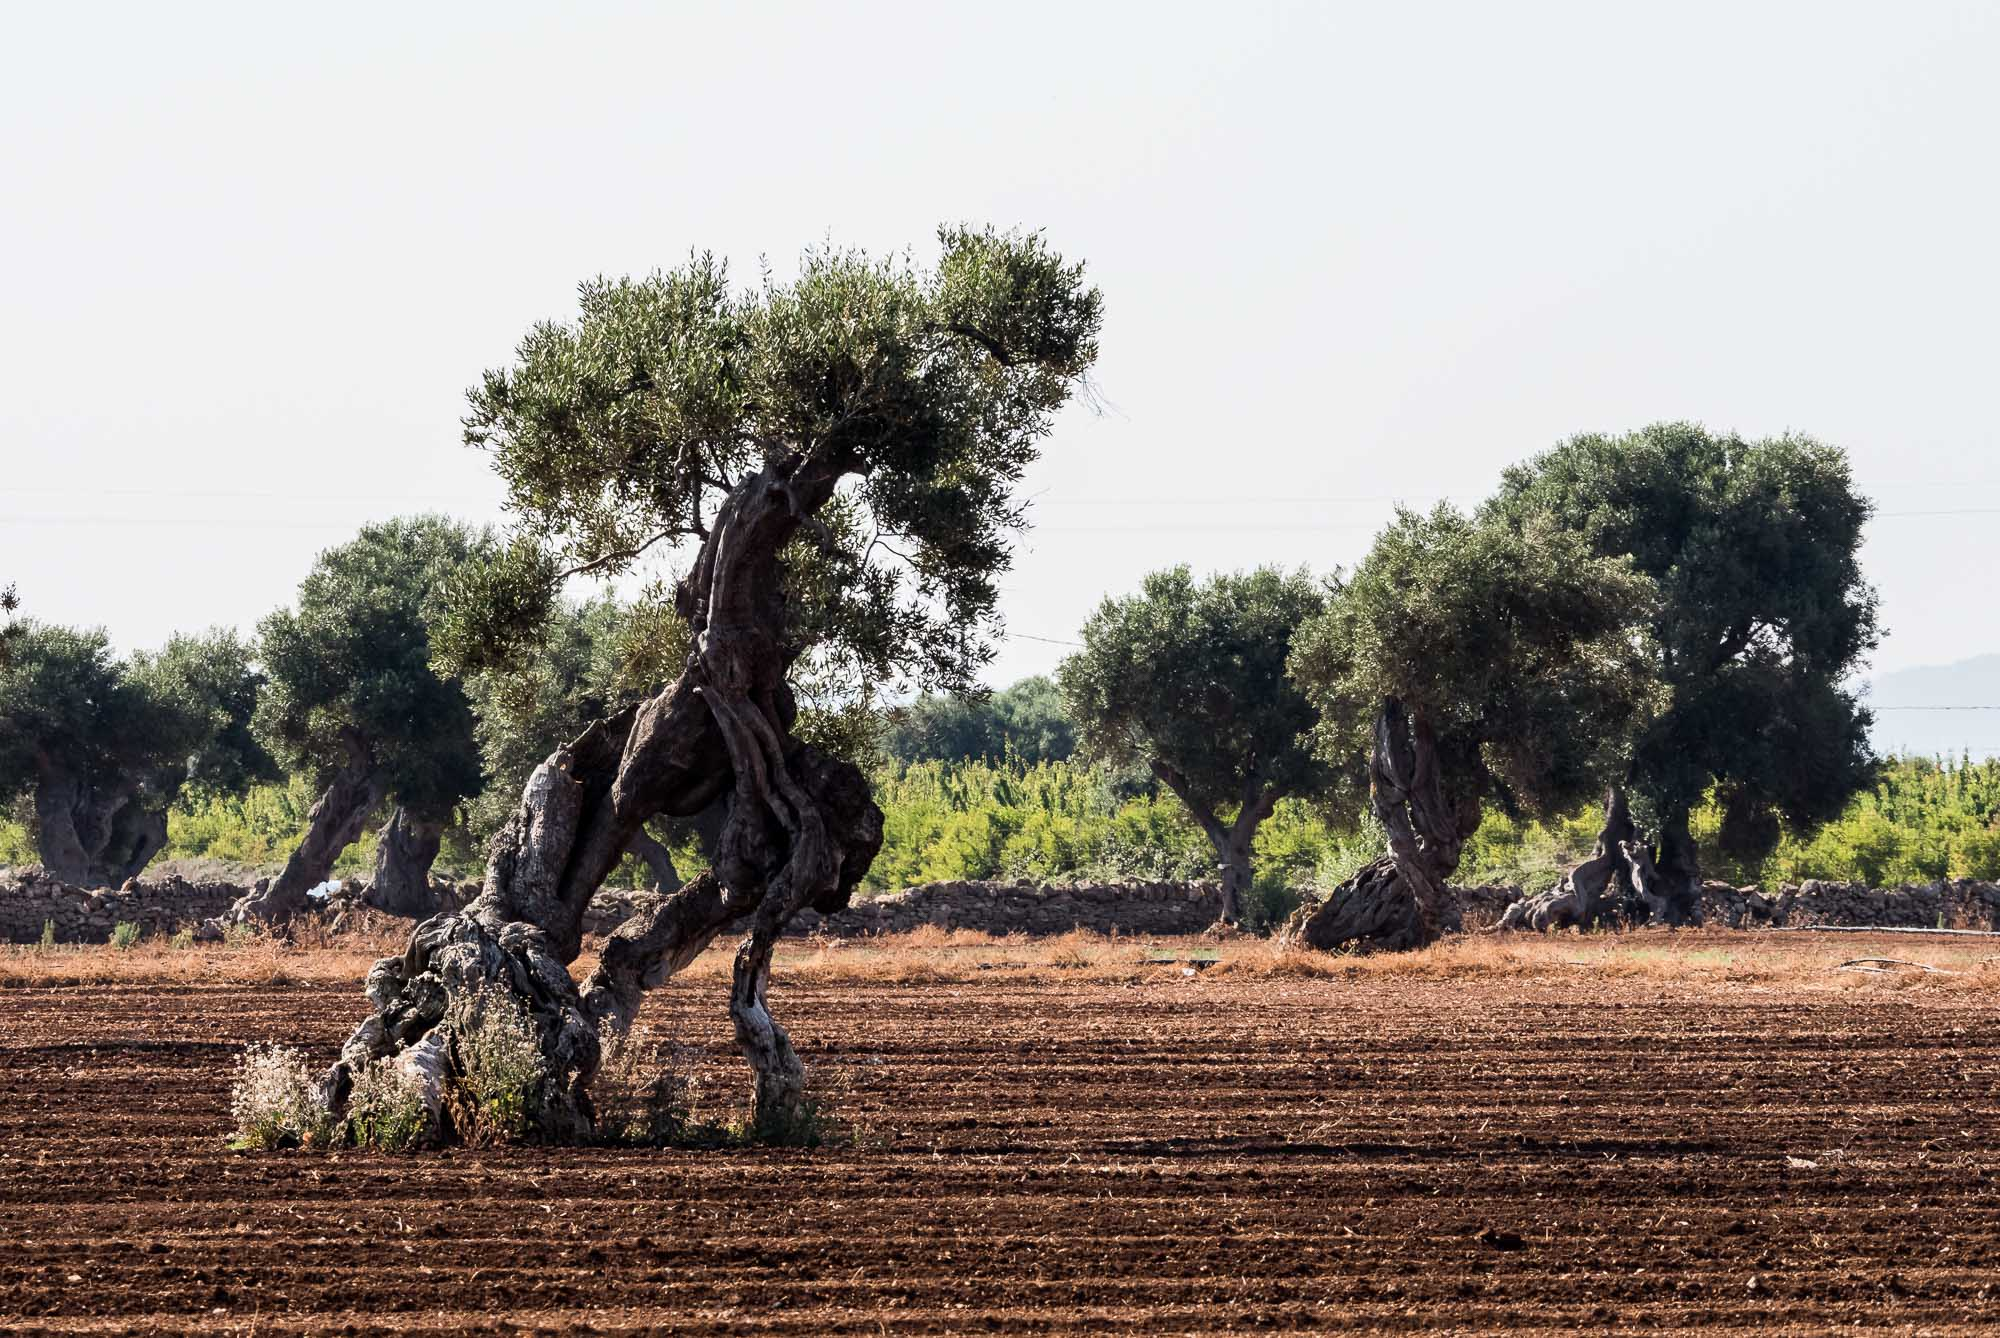 And more Olive Trees